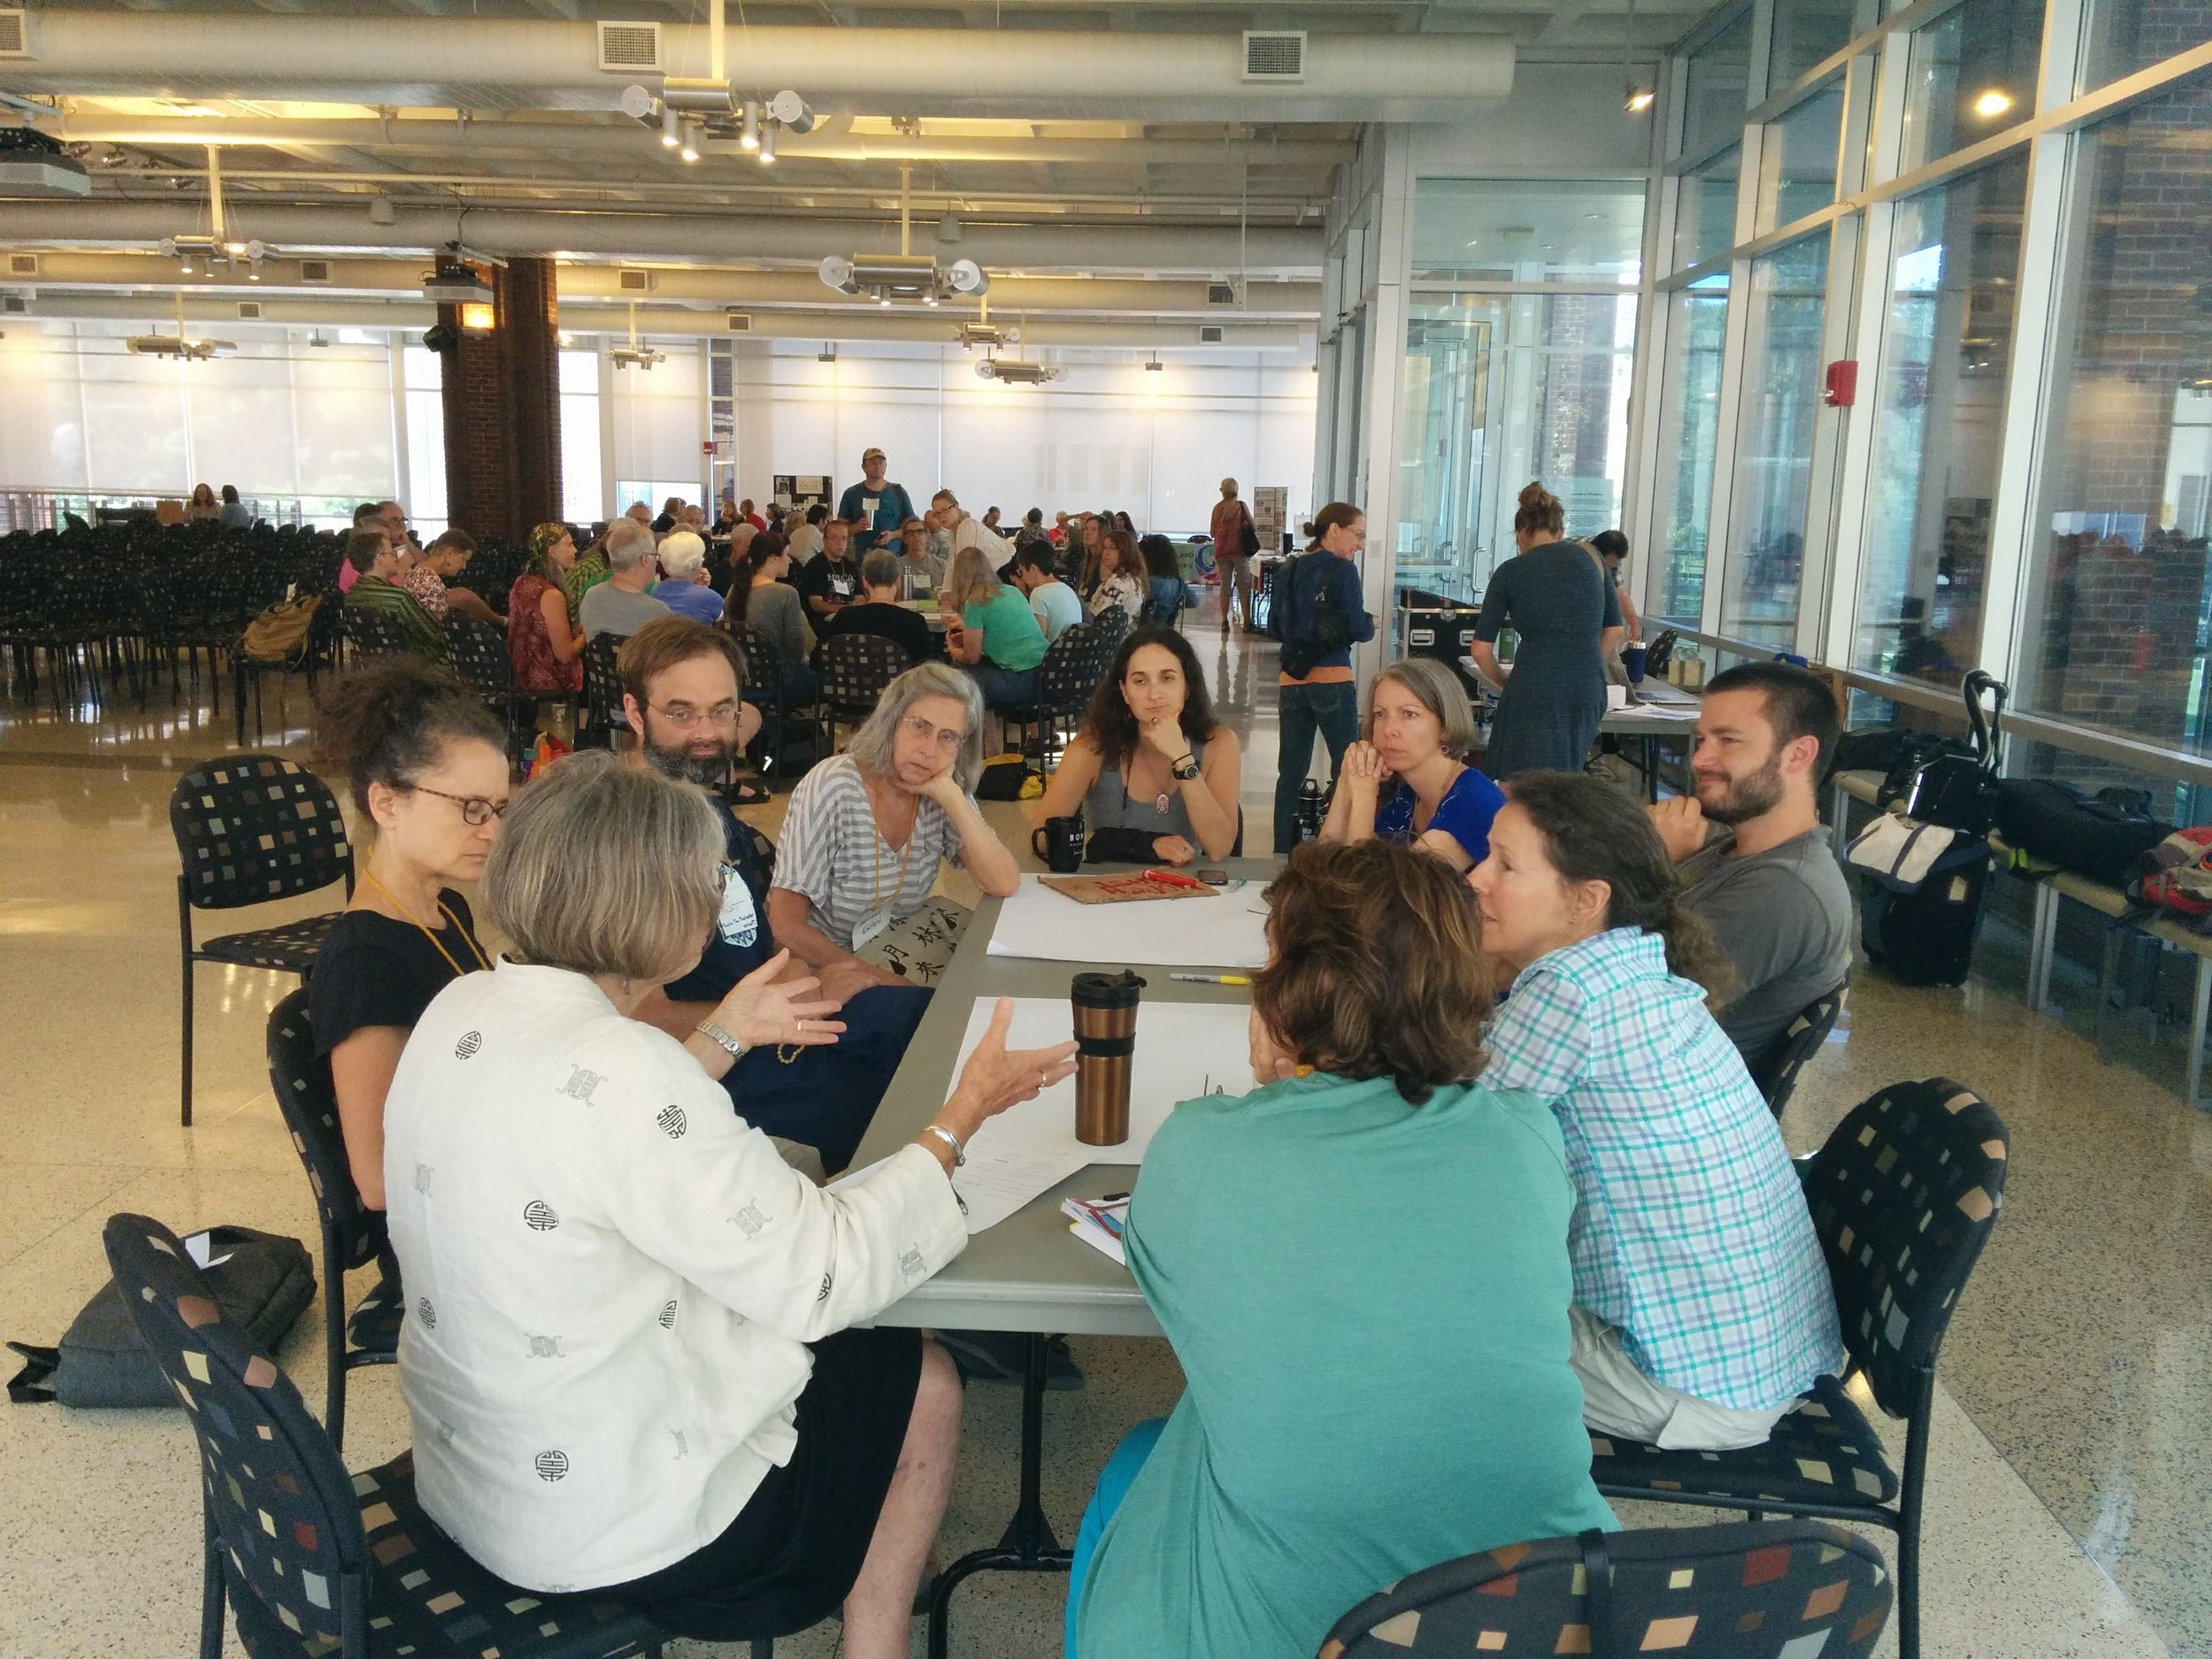 Nina Smolyar, Theo Talcott, Kristina Zill, Ruah Swennerfelt, and others explore the territory of Open Space together. Photo by Carolyne Stayton.